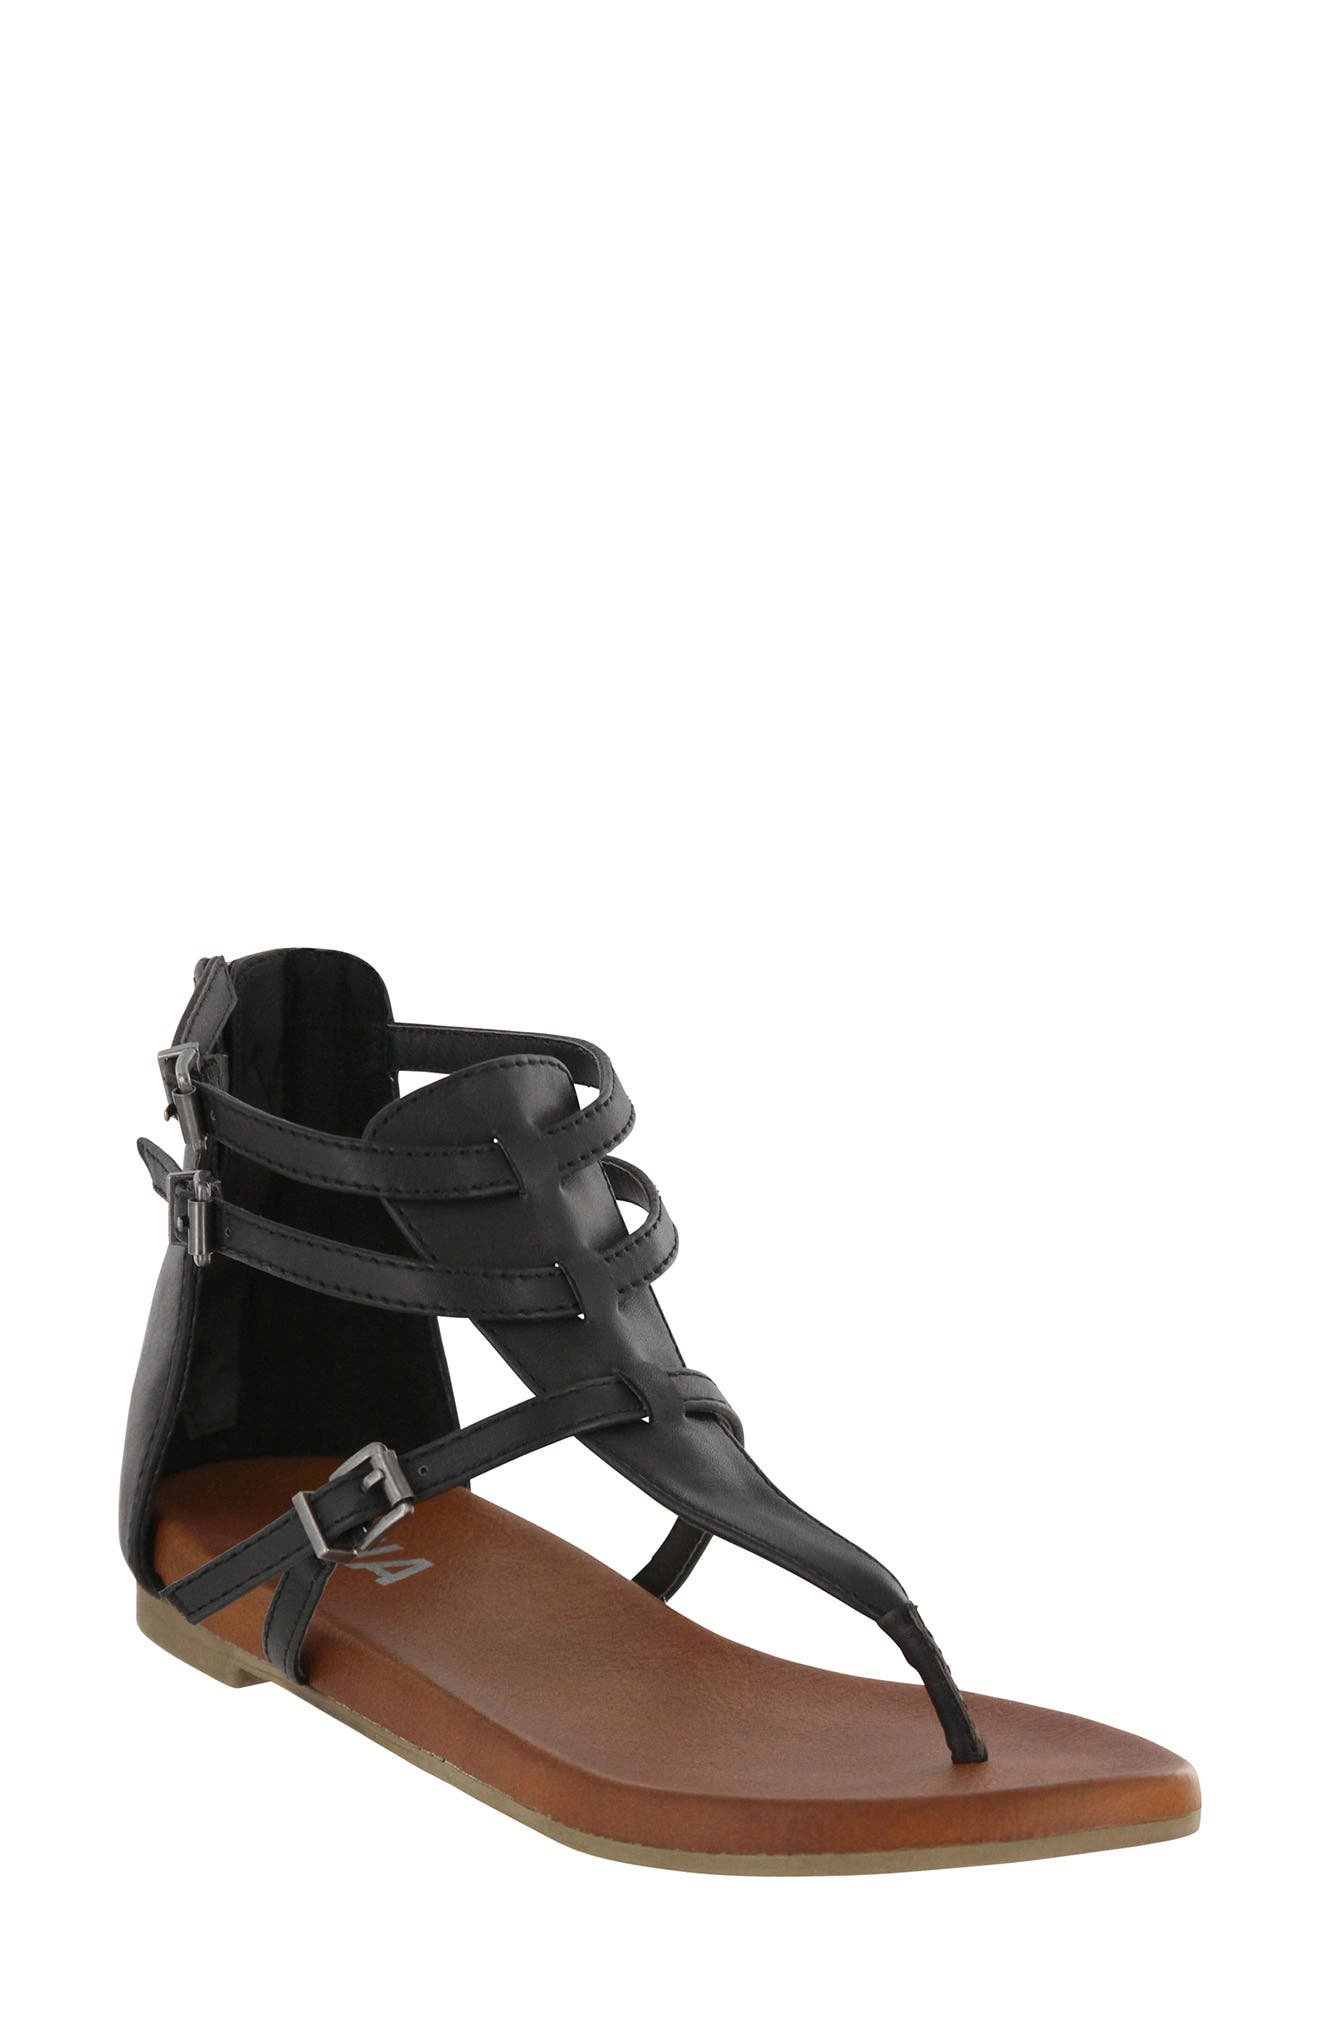 Dashiell V-Strap Sandal,                             Main thumbnail 1, color,                             Black